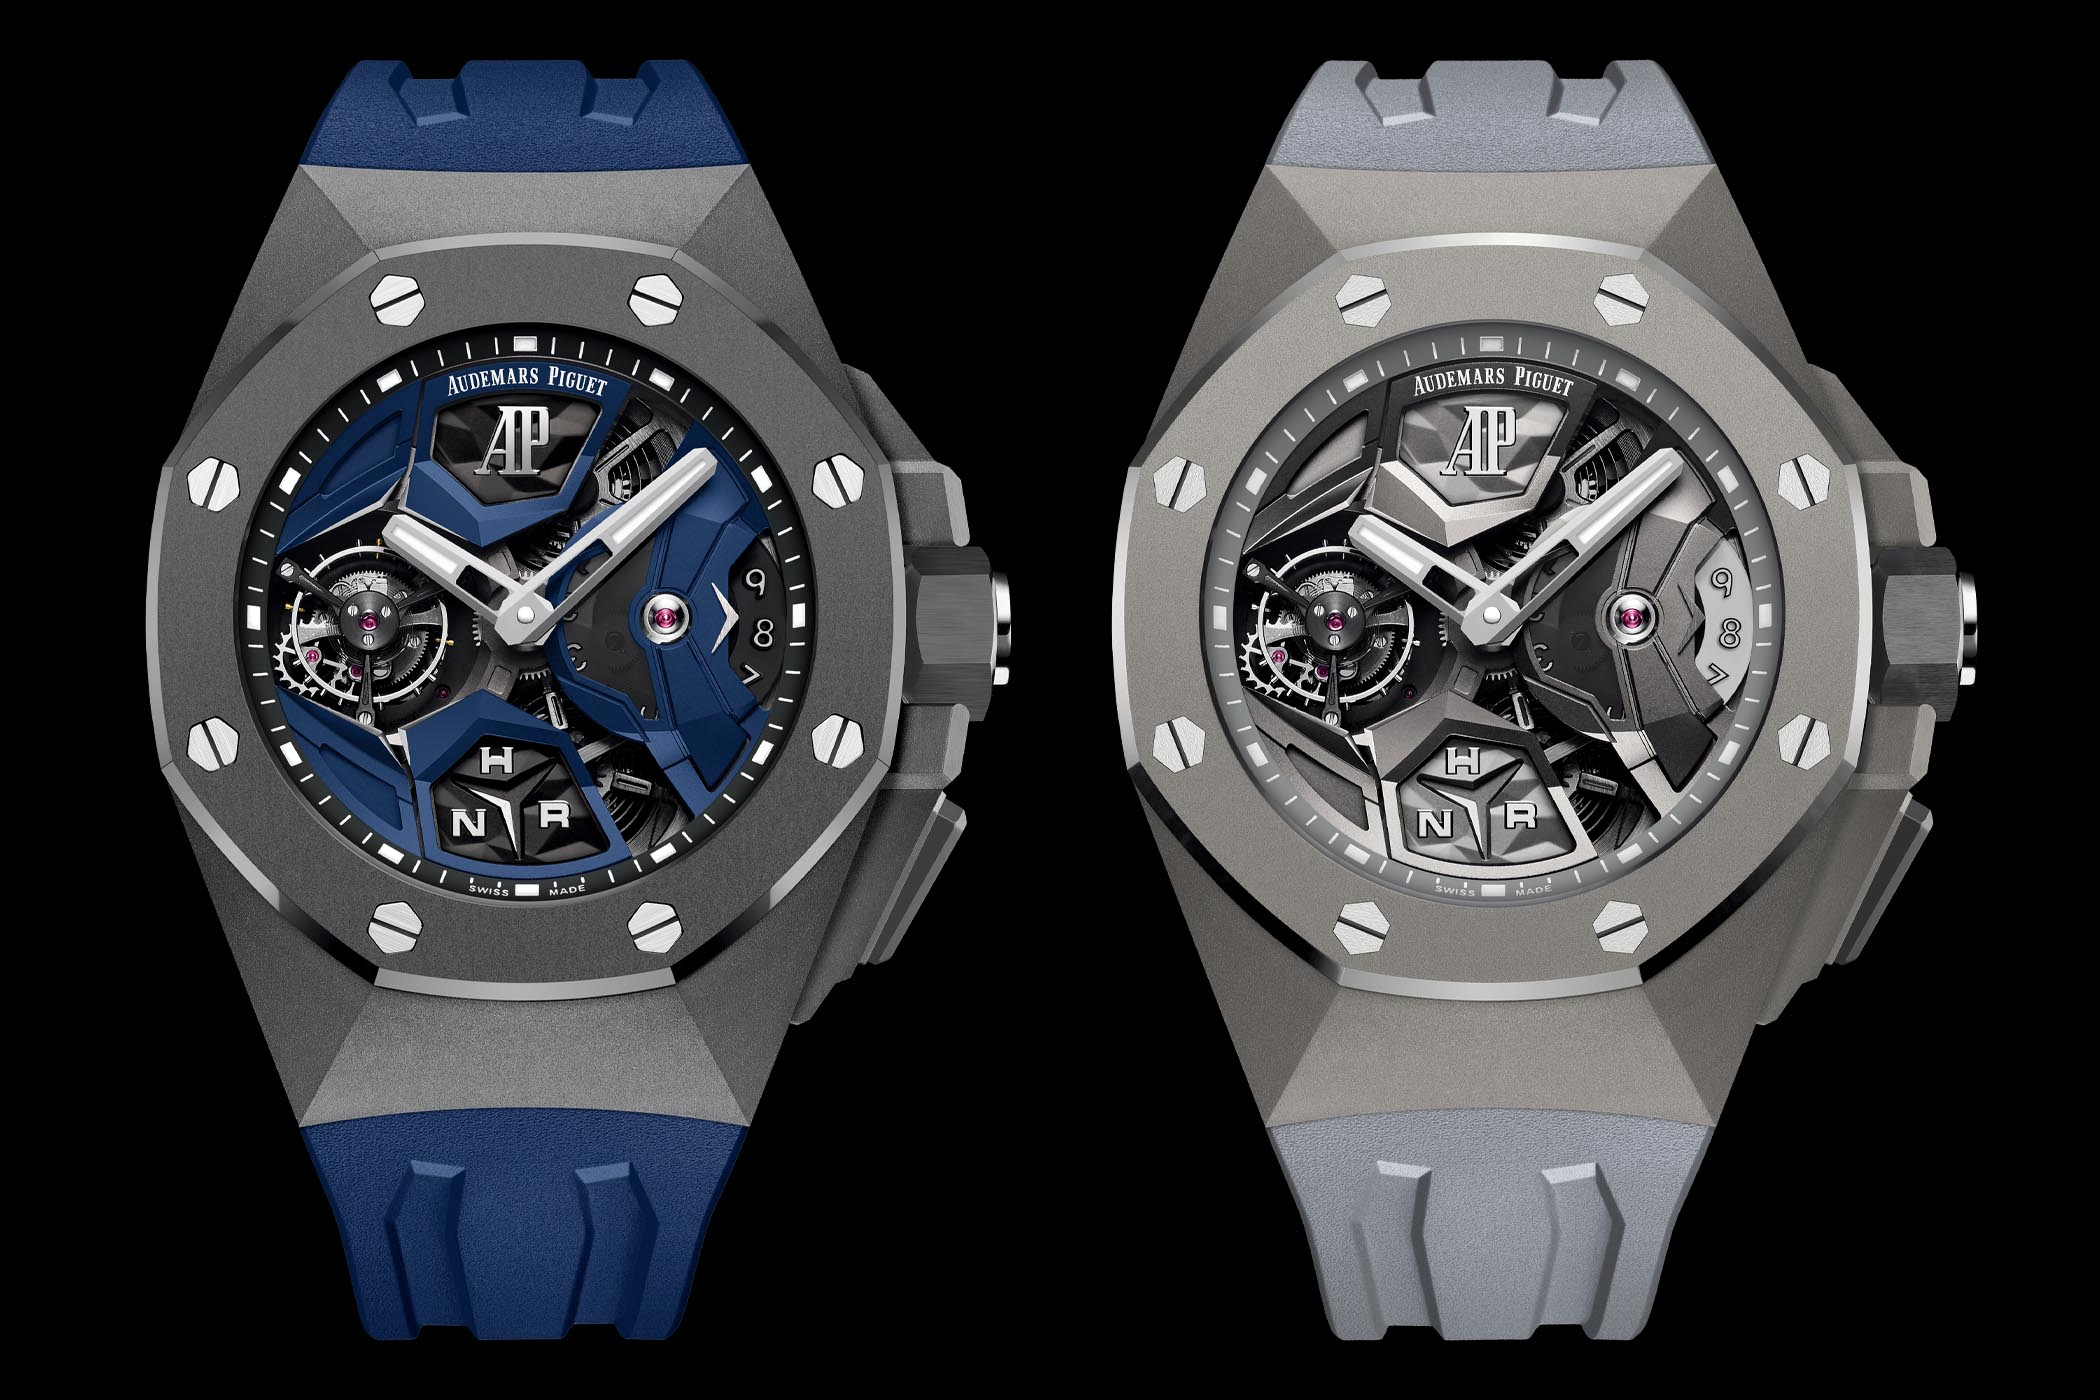 Audemars Piguet Royal Oak Concept Flying Tourbillon GMT - 26589IO and 26589TI